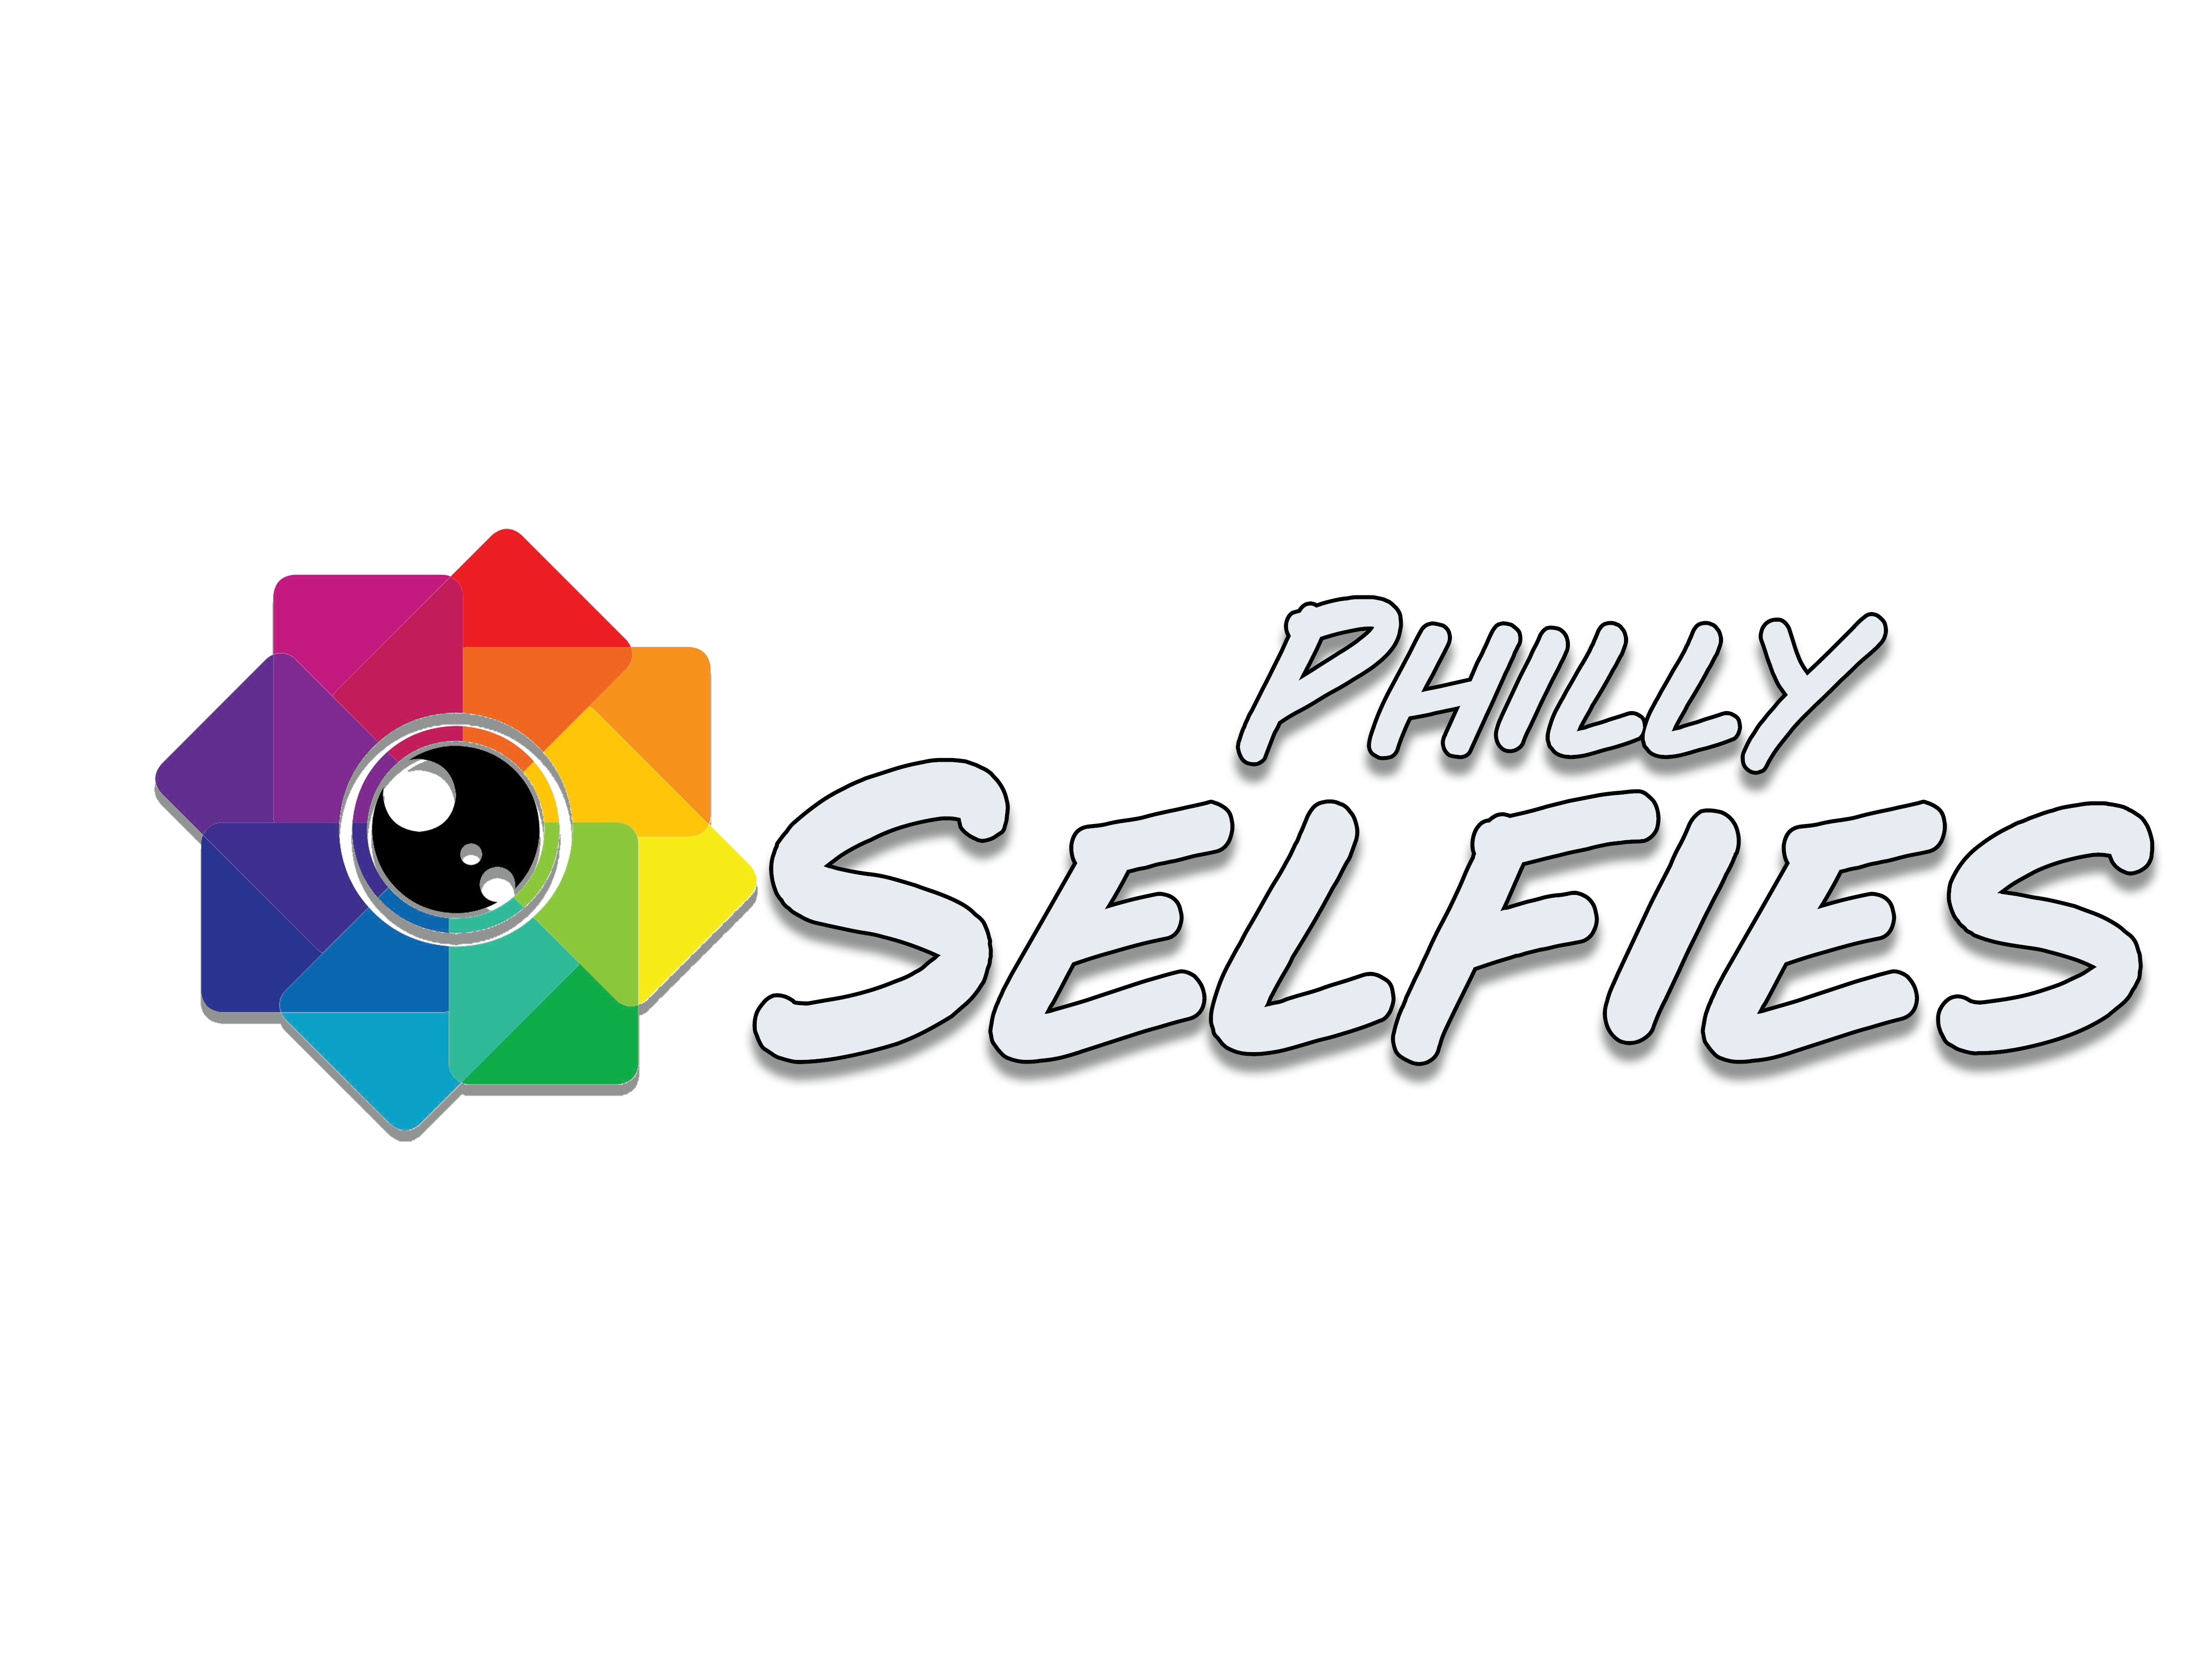 philly selfies logo